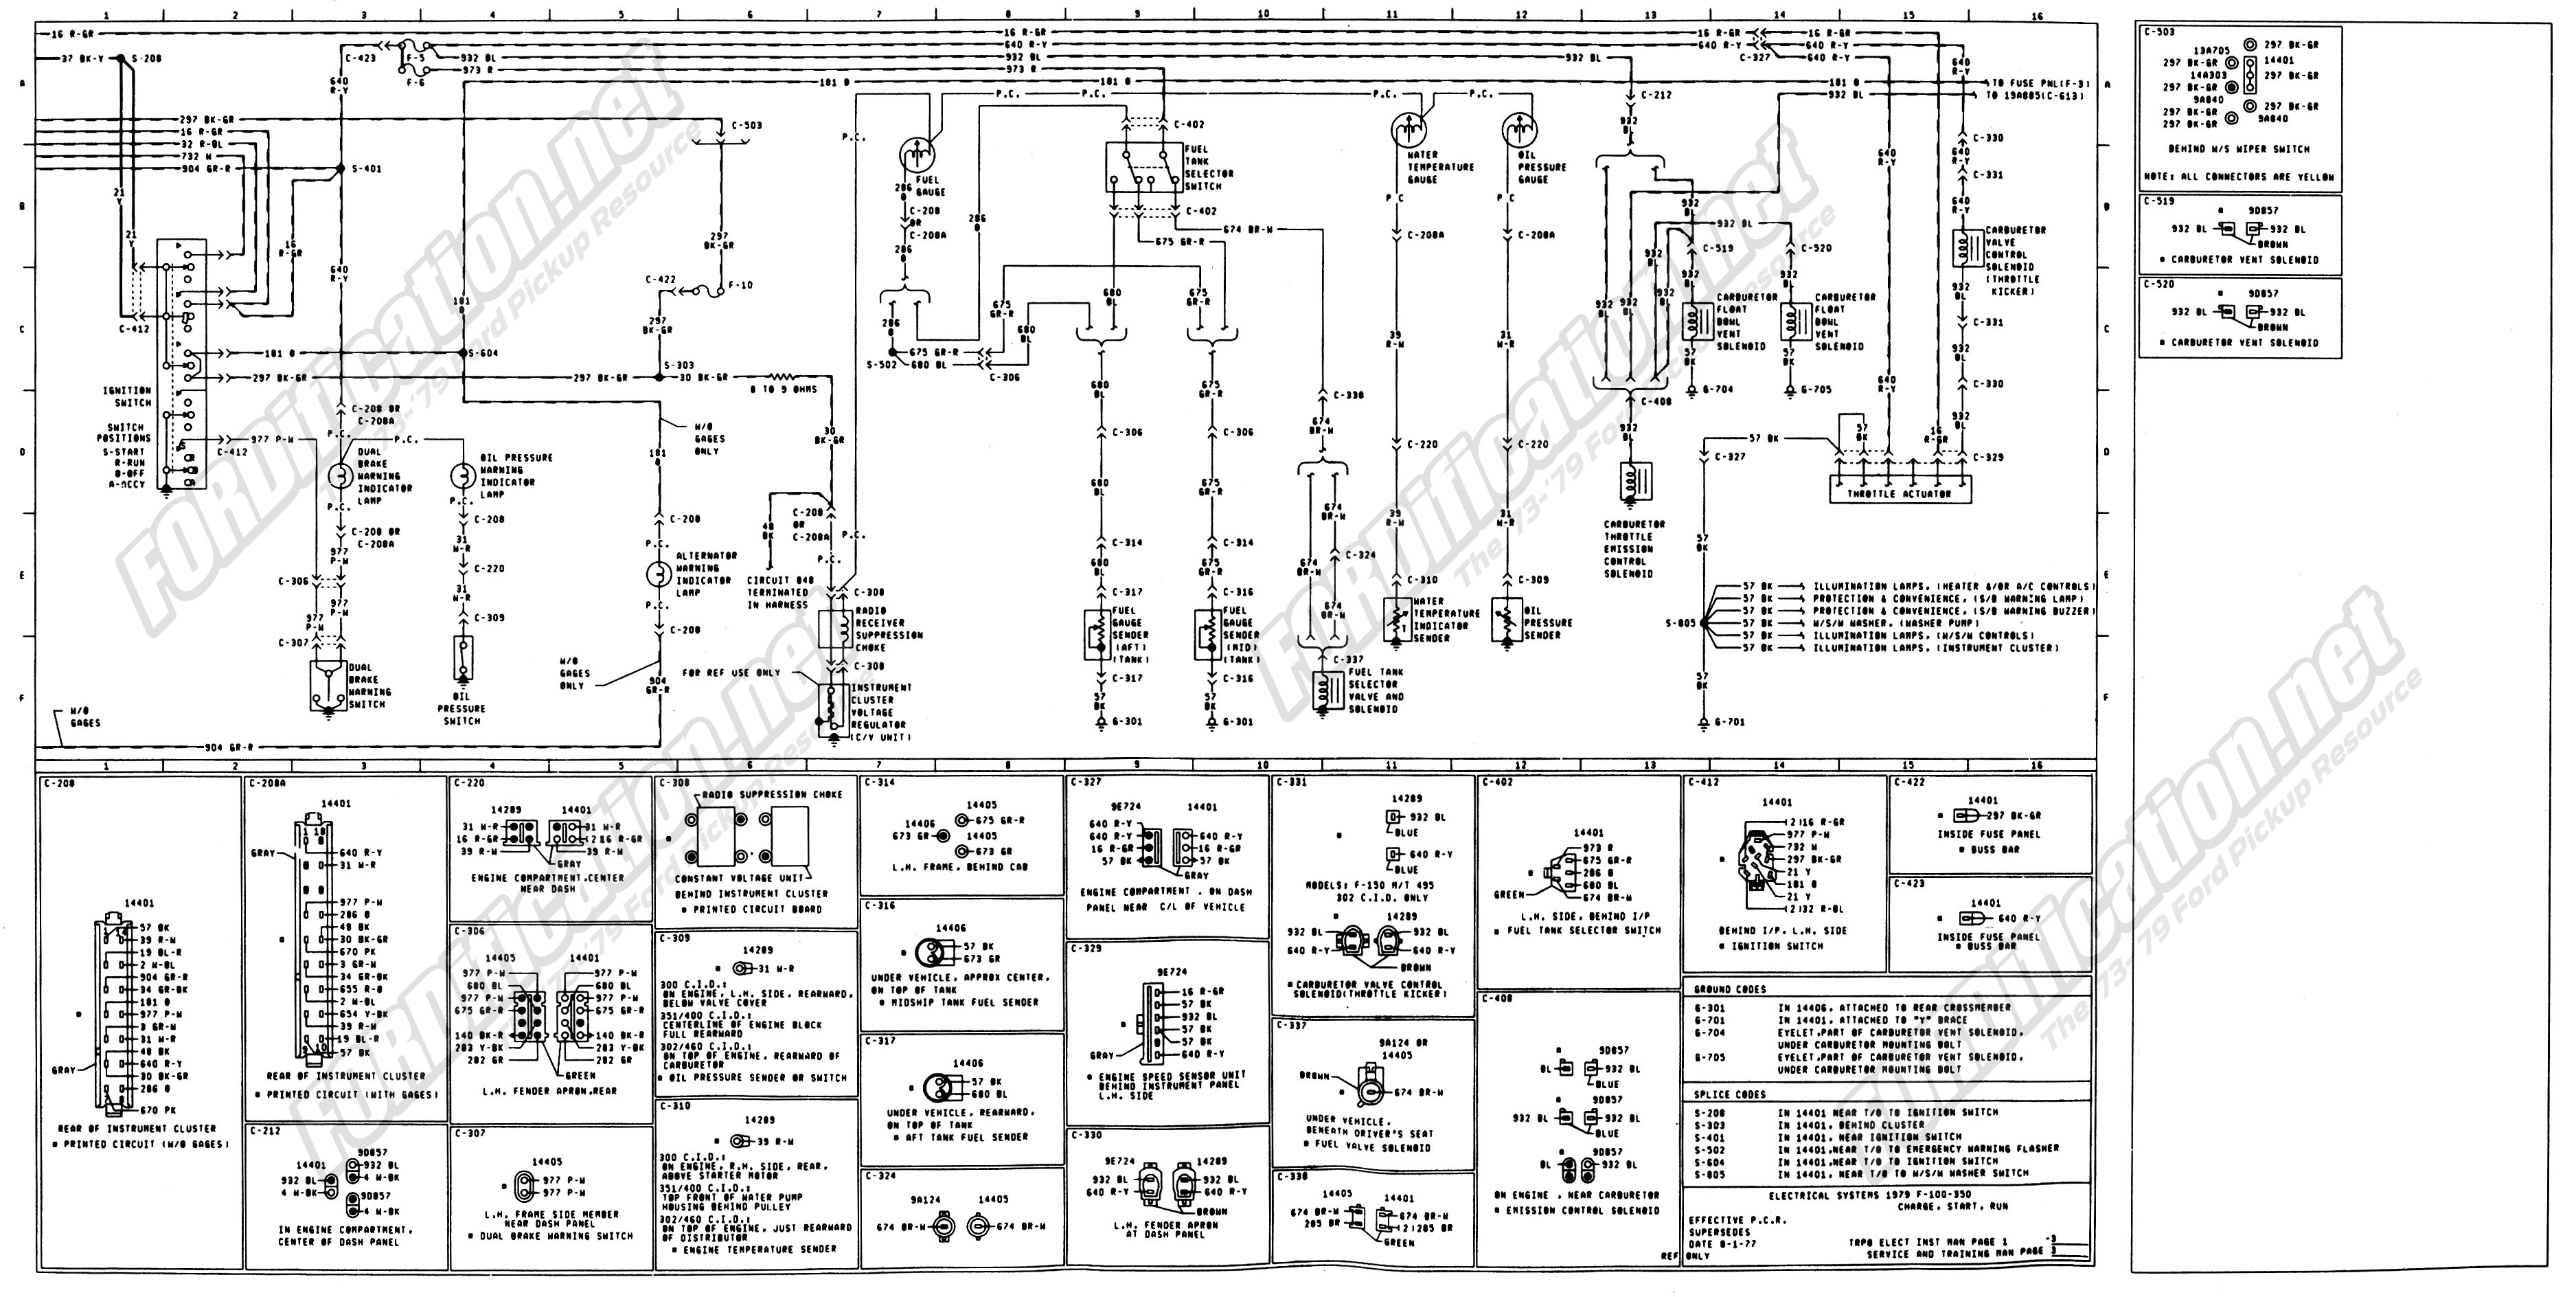 wiring diagram for 1974 ford f250 wiring diagram sys 1970 Ford F100 Wiring Harness